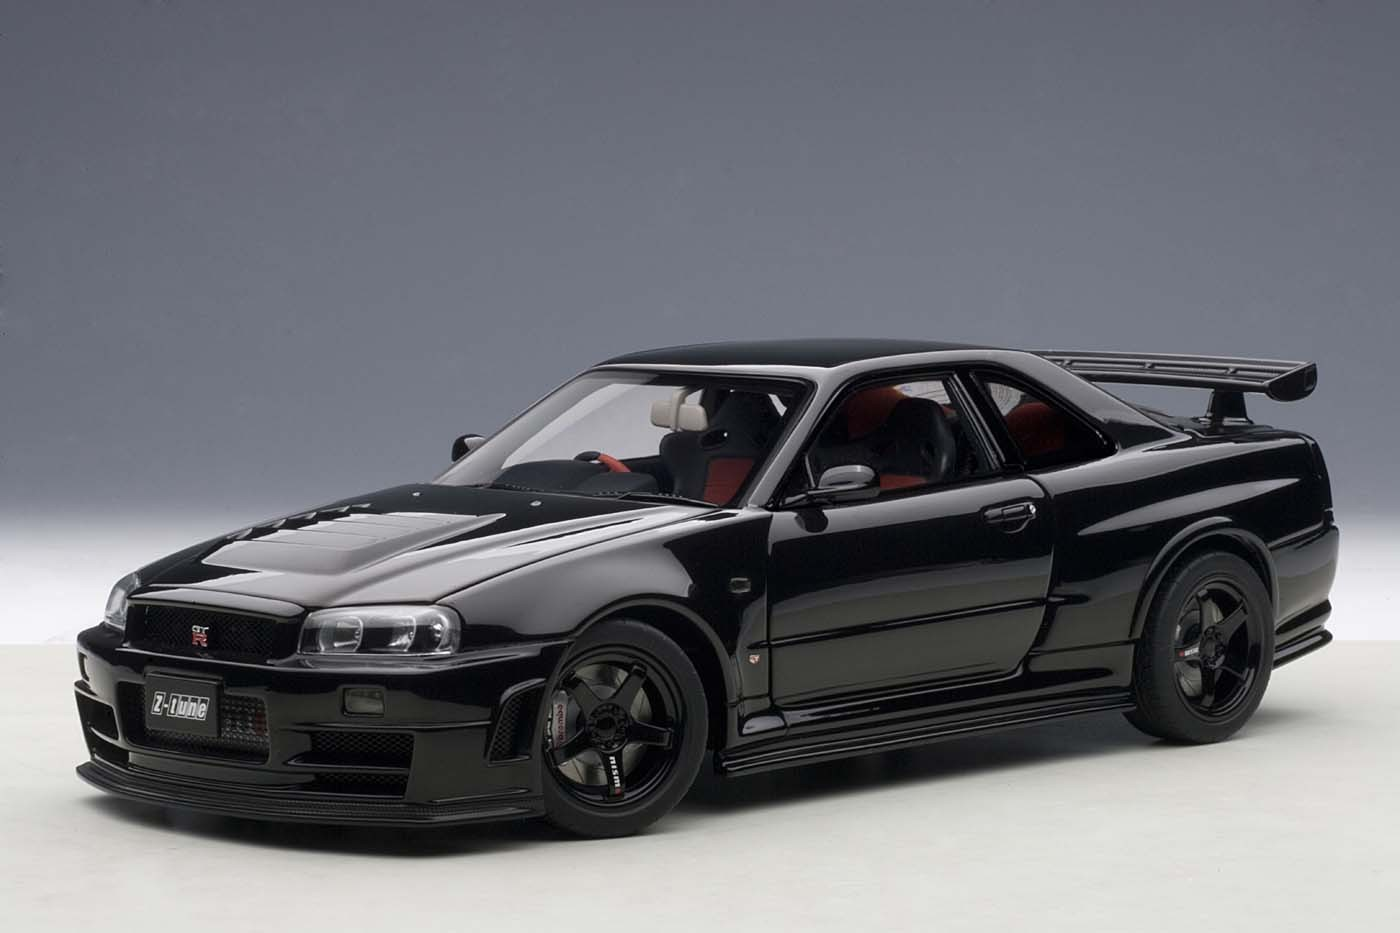 autoart die cast model nissan r34 gt r z tune skyline black 77355 die cast model in 1 18 scale. Black Bedroom Furniture Sets. Home Design Ideas